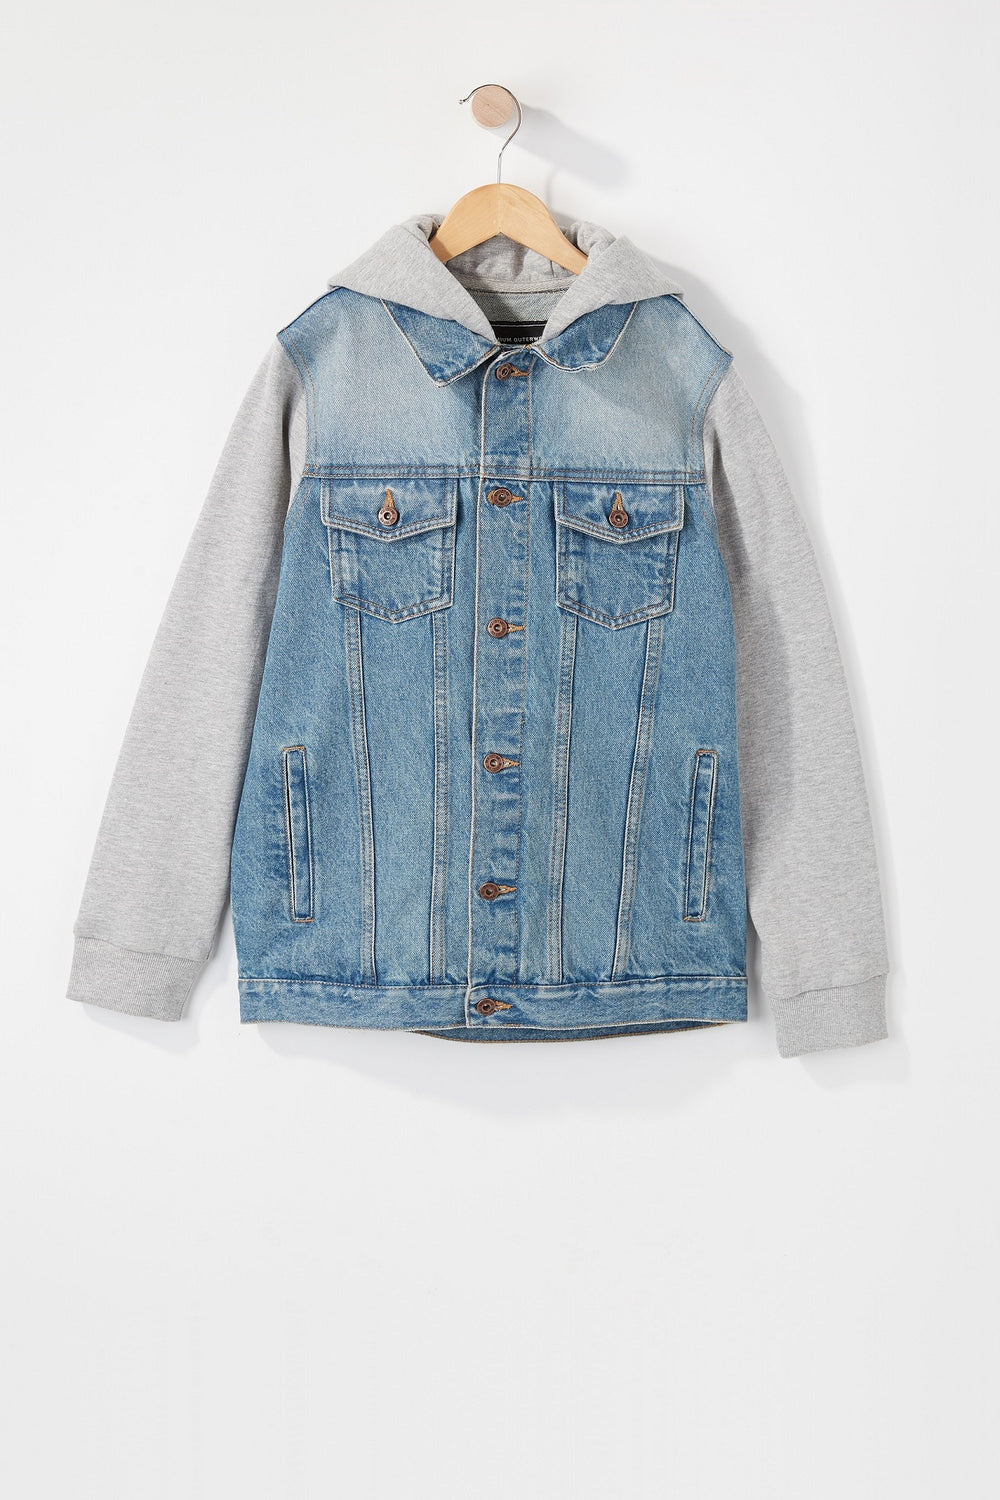 Manteau En Denim West49 Junior Bleu denim